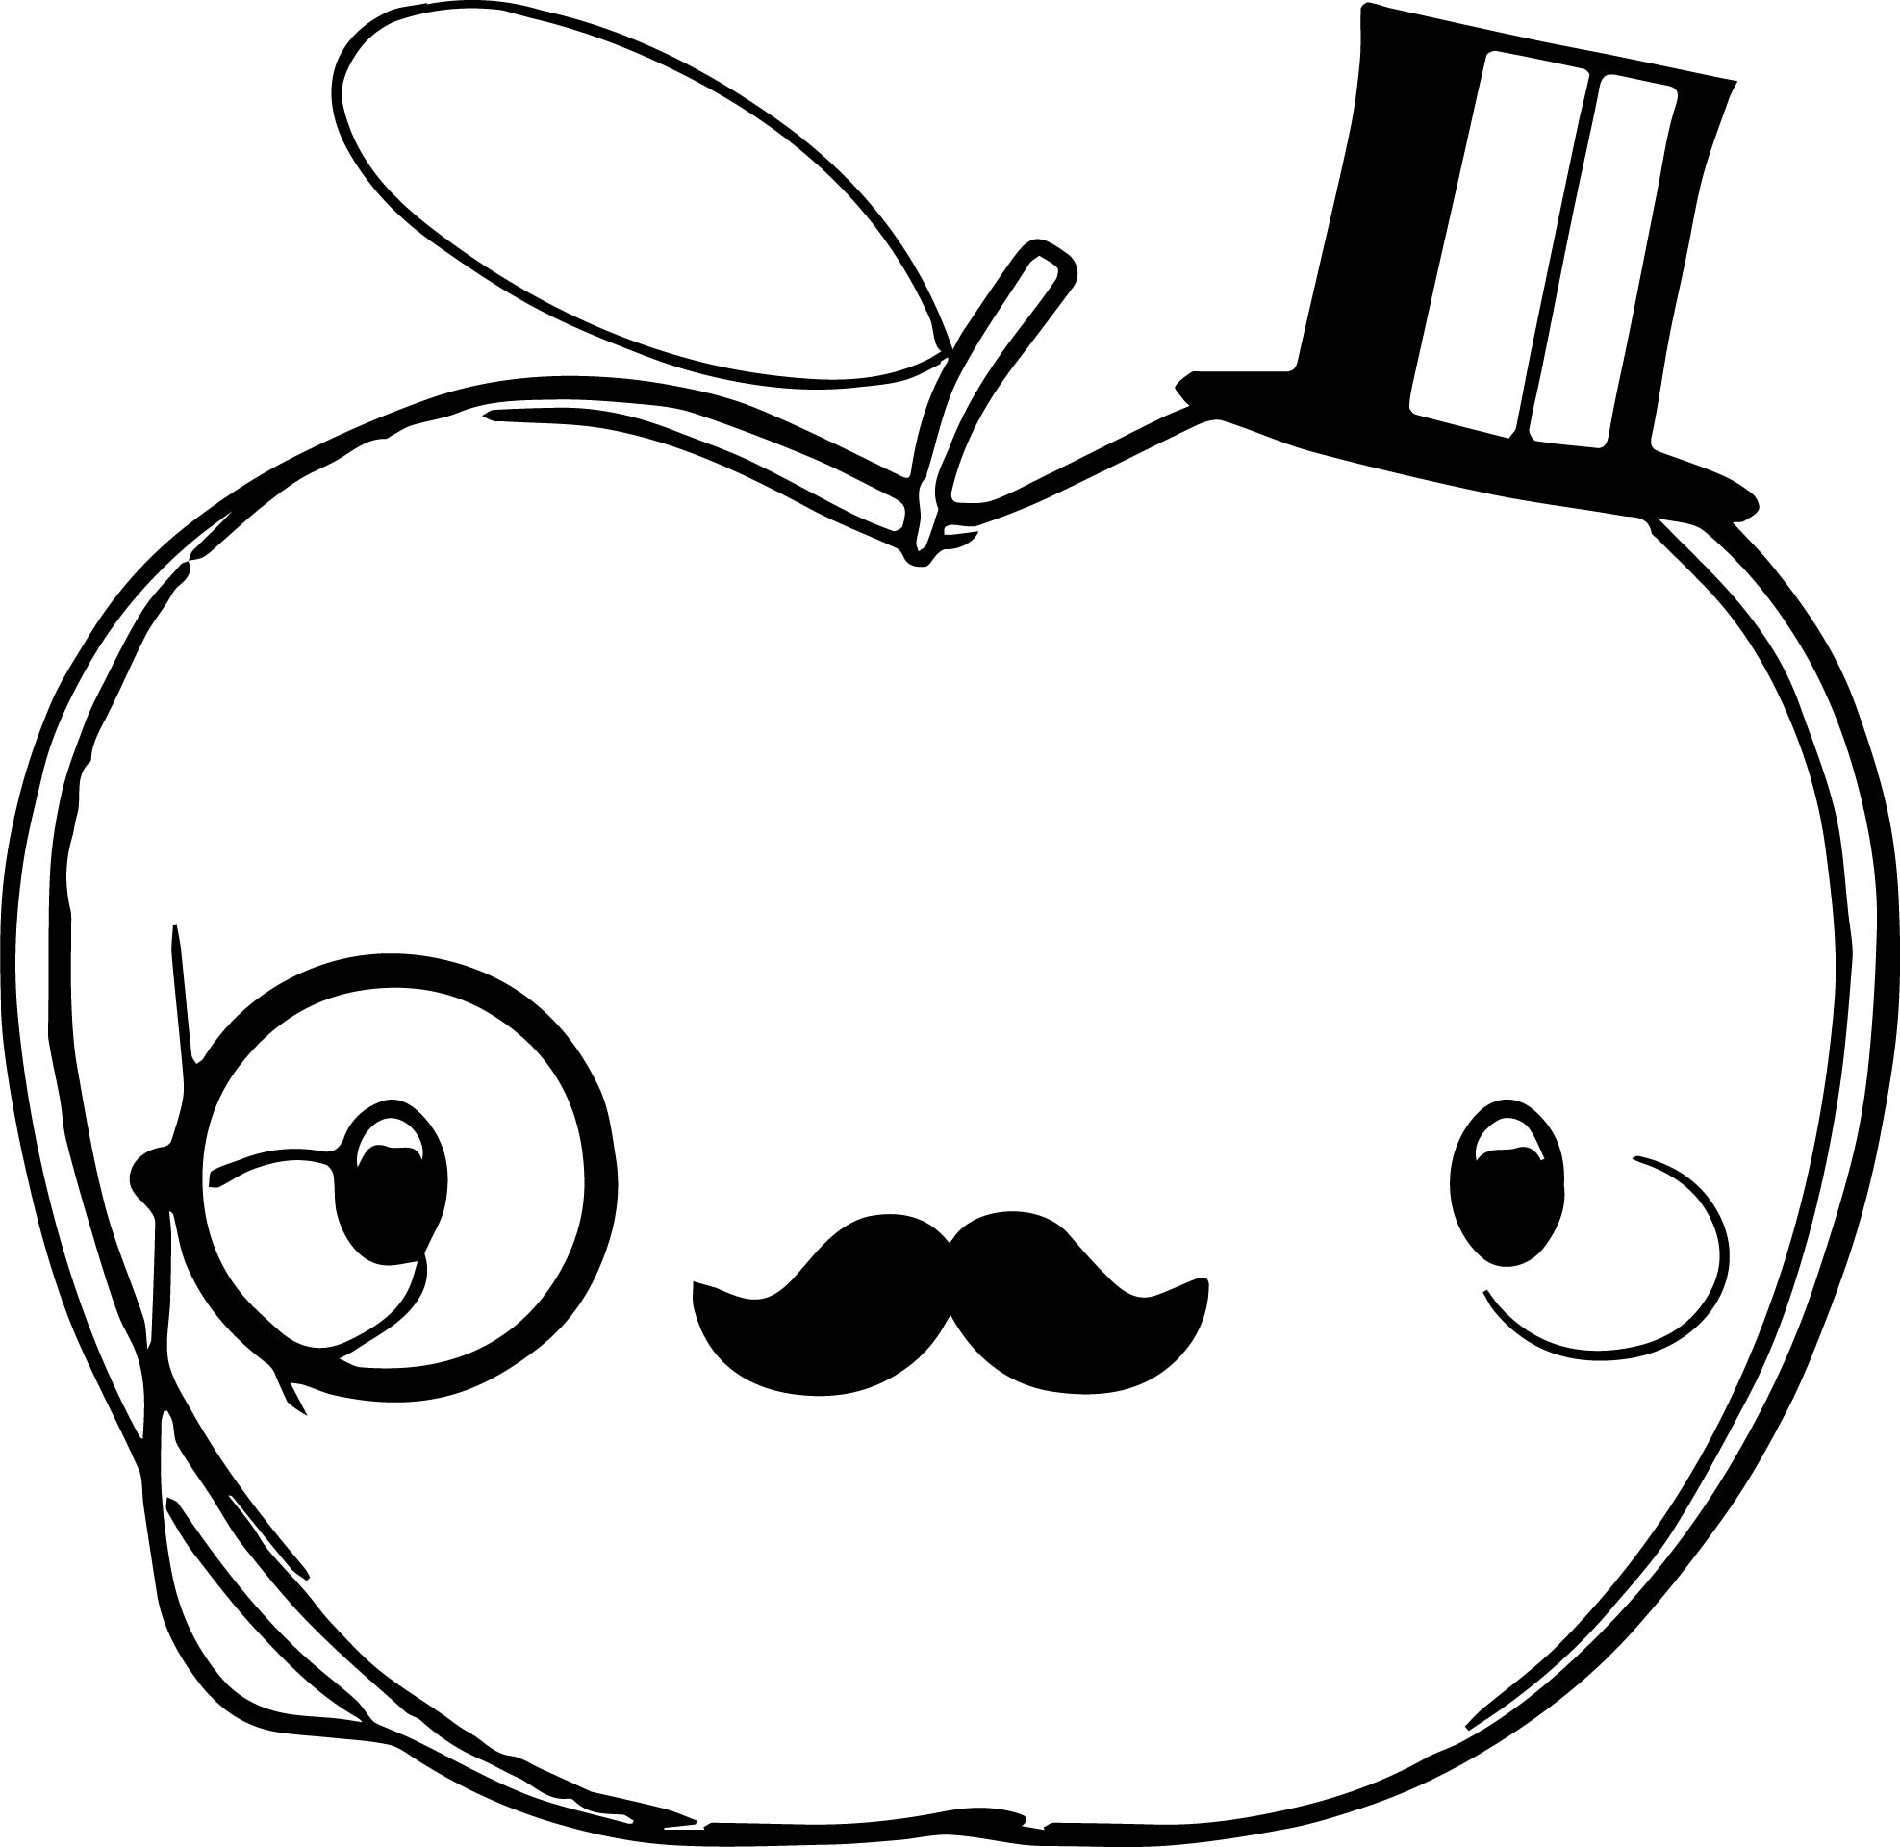 coloring apple page apple coloring page wecoloring apple coloring page